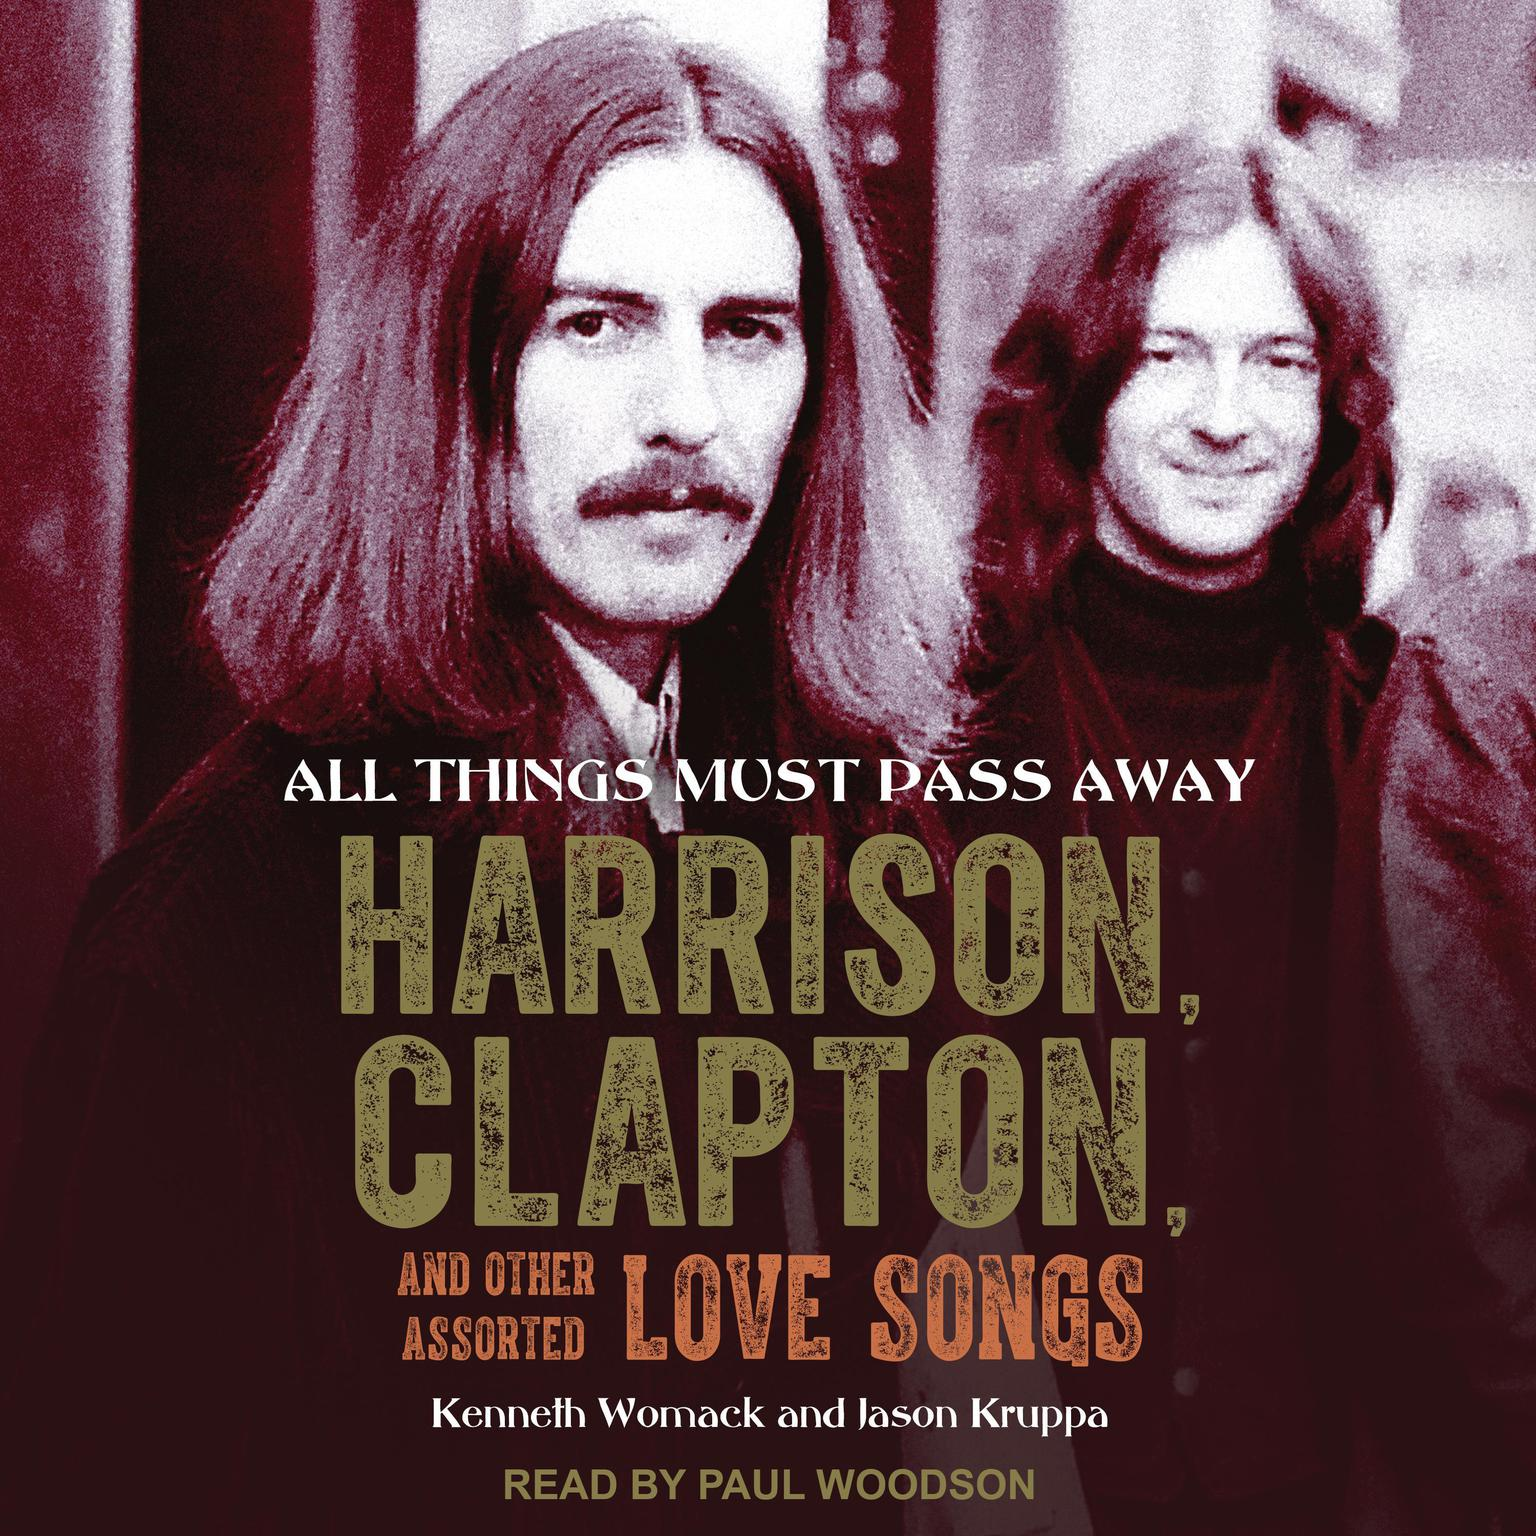 All Things Must Pass Away: Harrison, Clapton, and Other Assorted Love Songs Audiobook, by Kenneth Womack